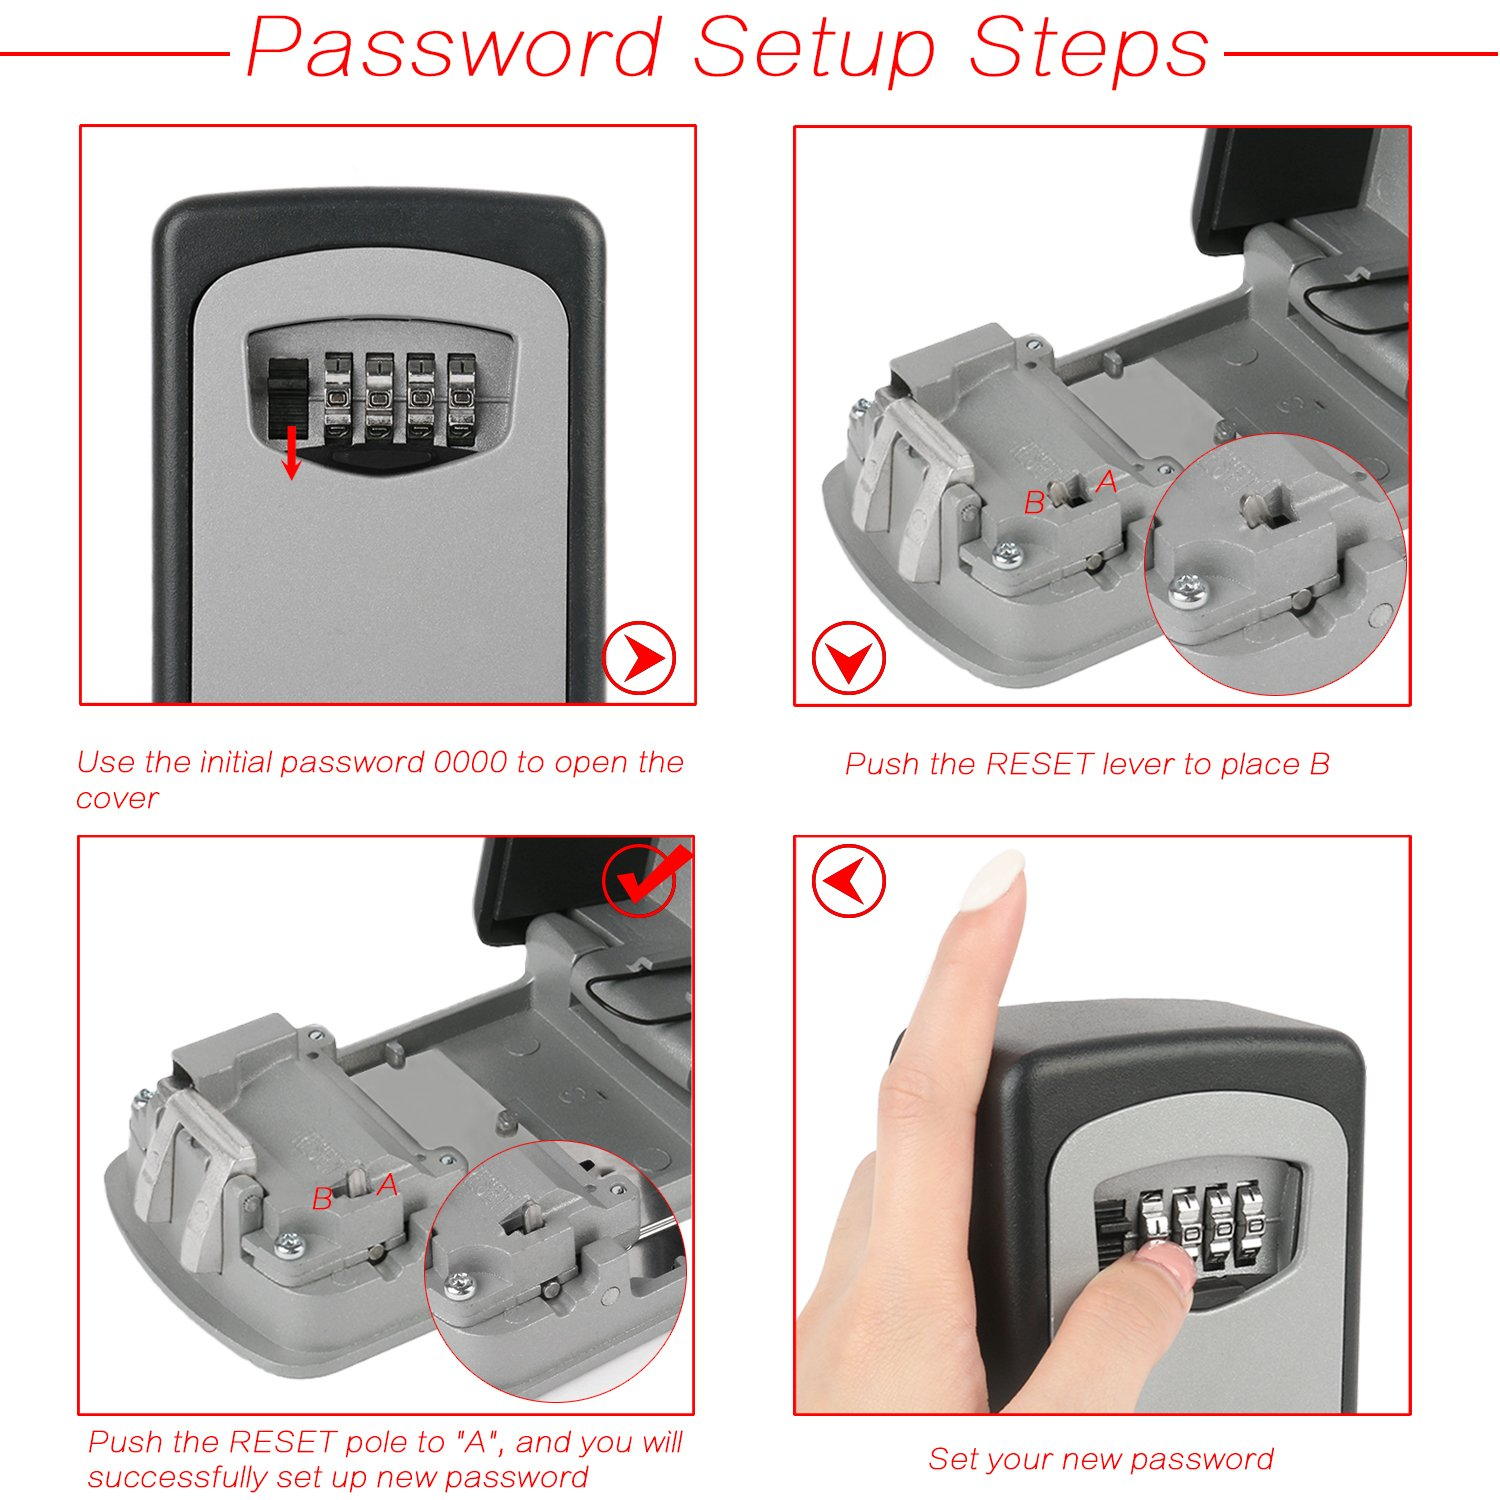 Key Lock Box OKPOW Outdoor Heavy Duty Wall Mounted Combination Key Safe Large Storage Lock Box with Strong 4 Digit Lock for Home Garage School Office Spare Keys by OKPOW (Image #3)